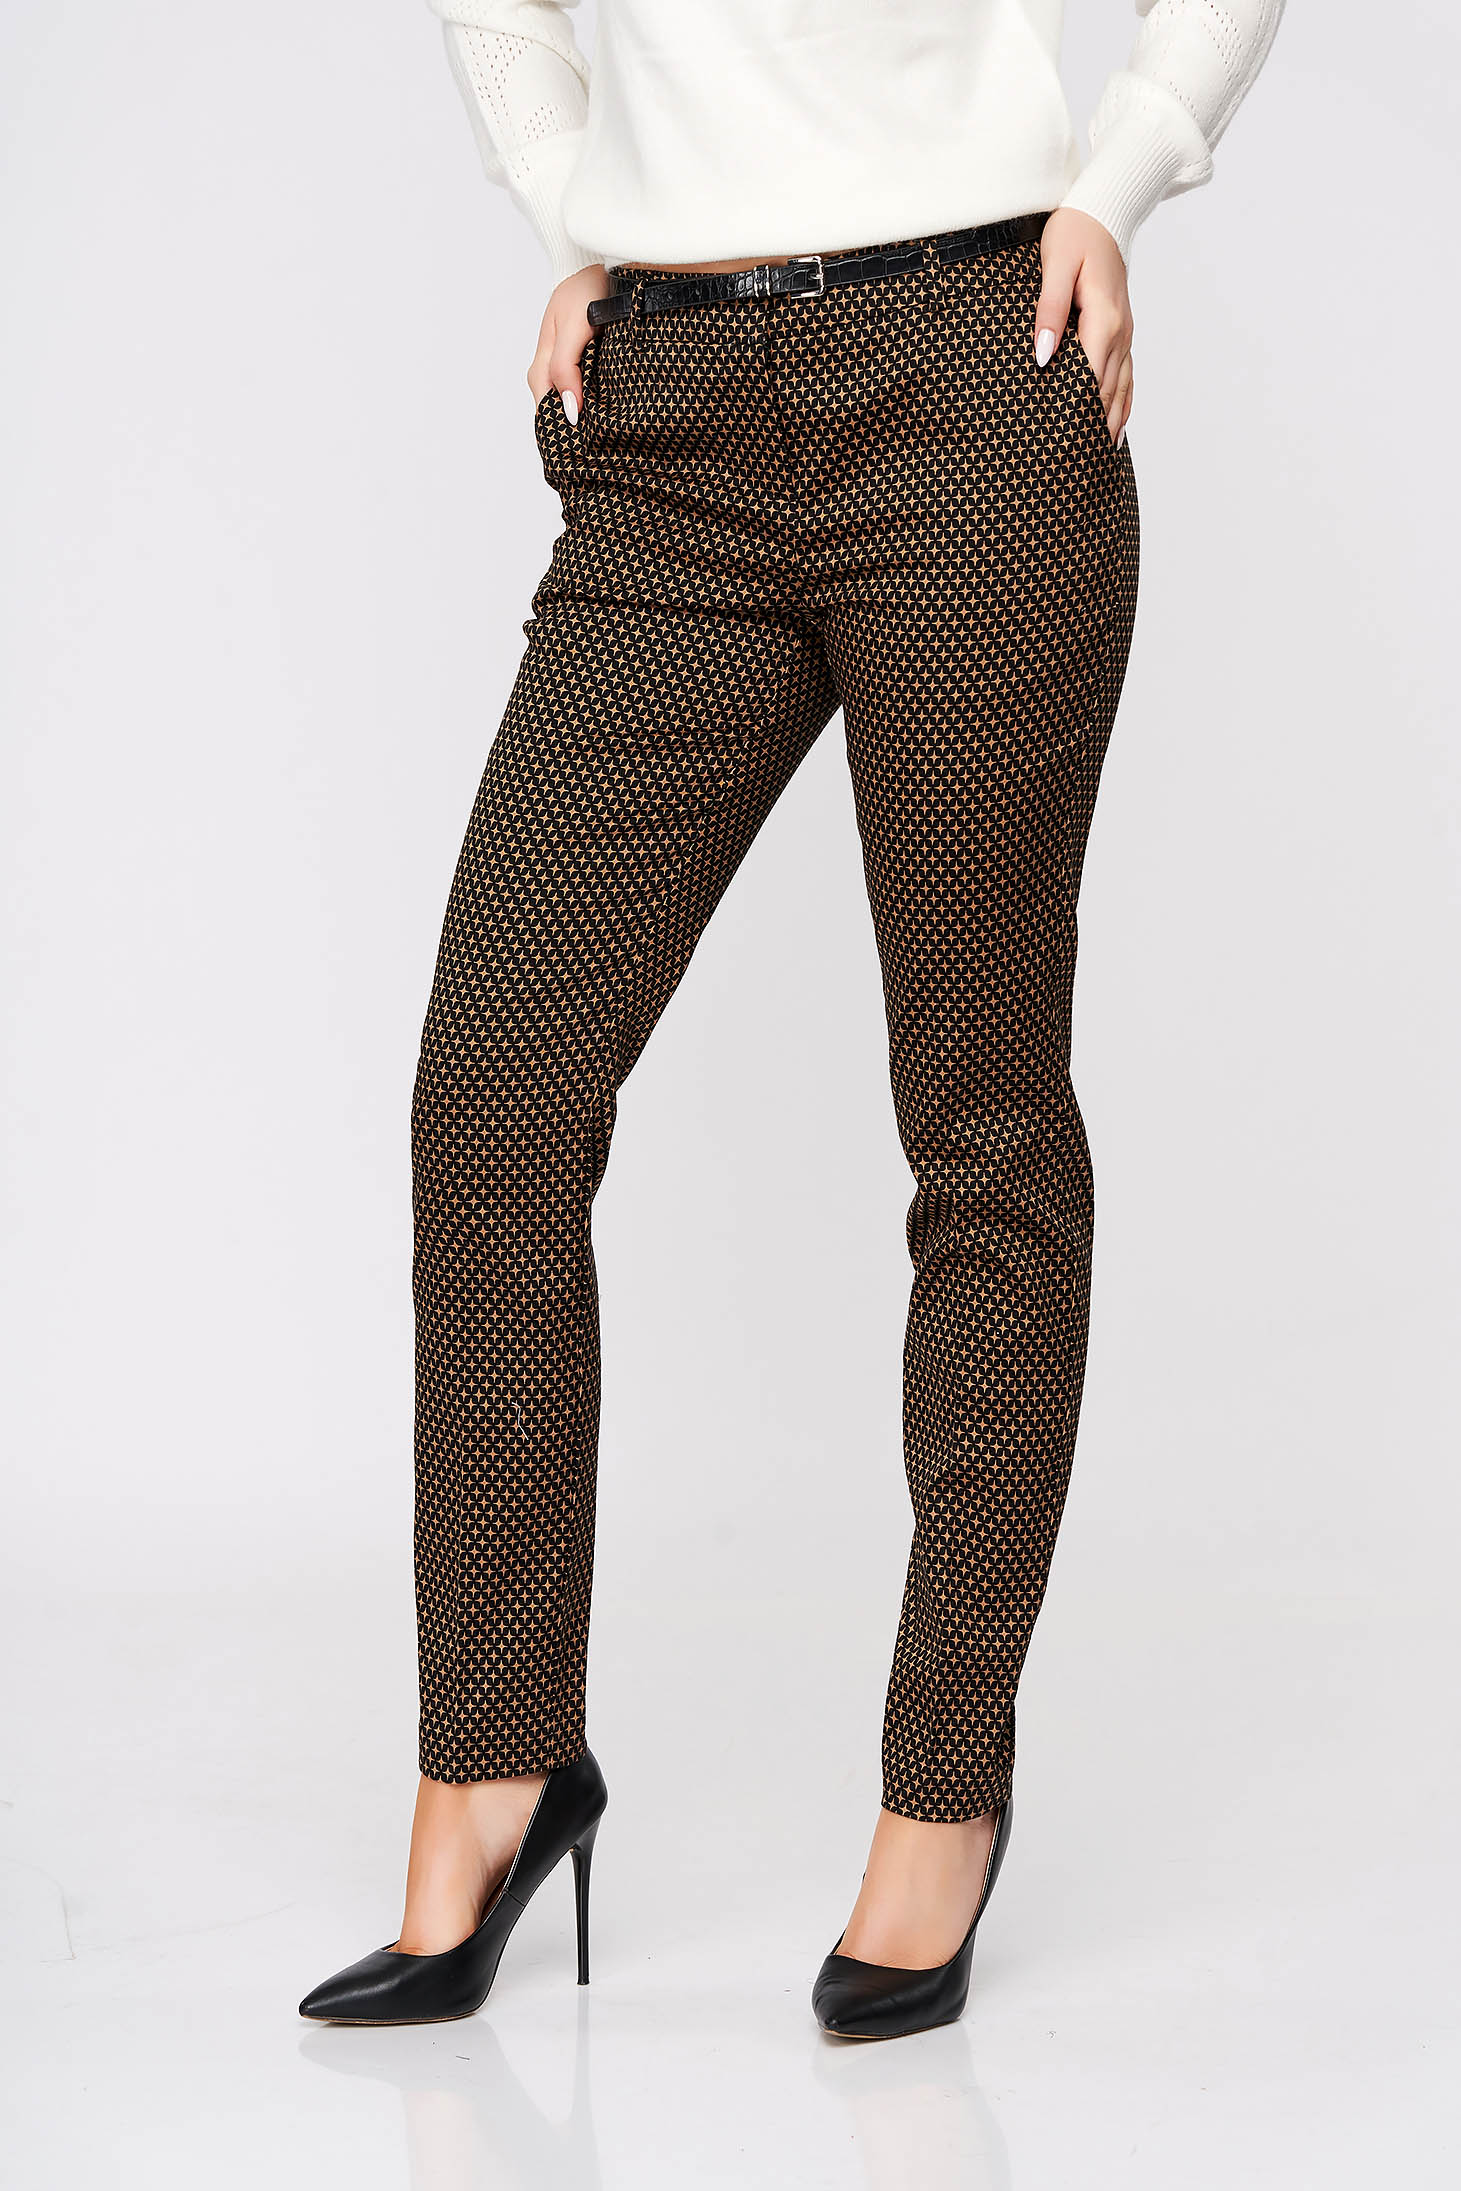 Darkblue trousers medium waist conical accessorized with belt